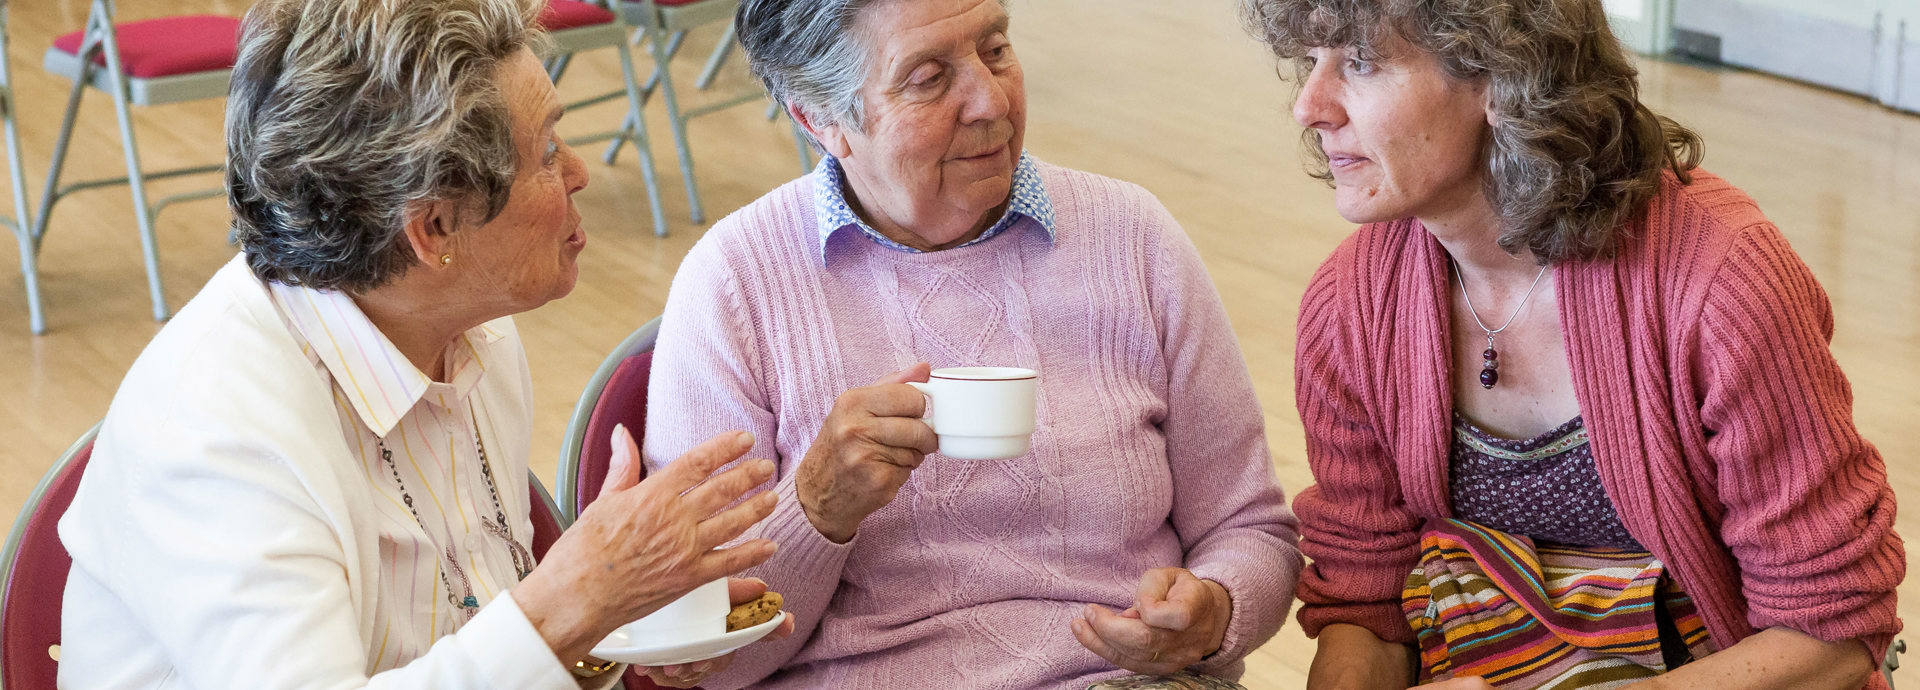 Carers' support groups